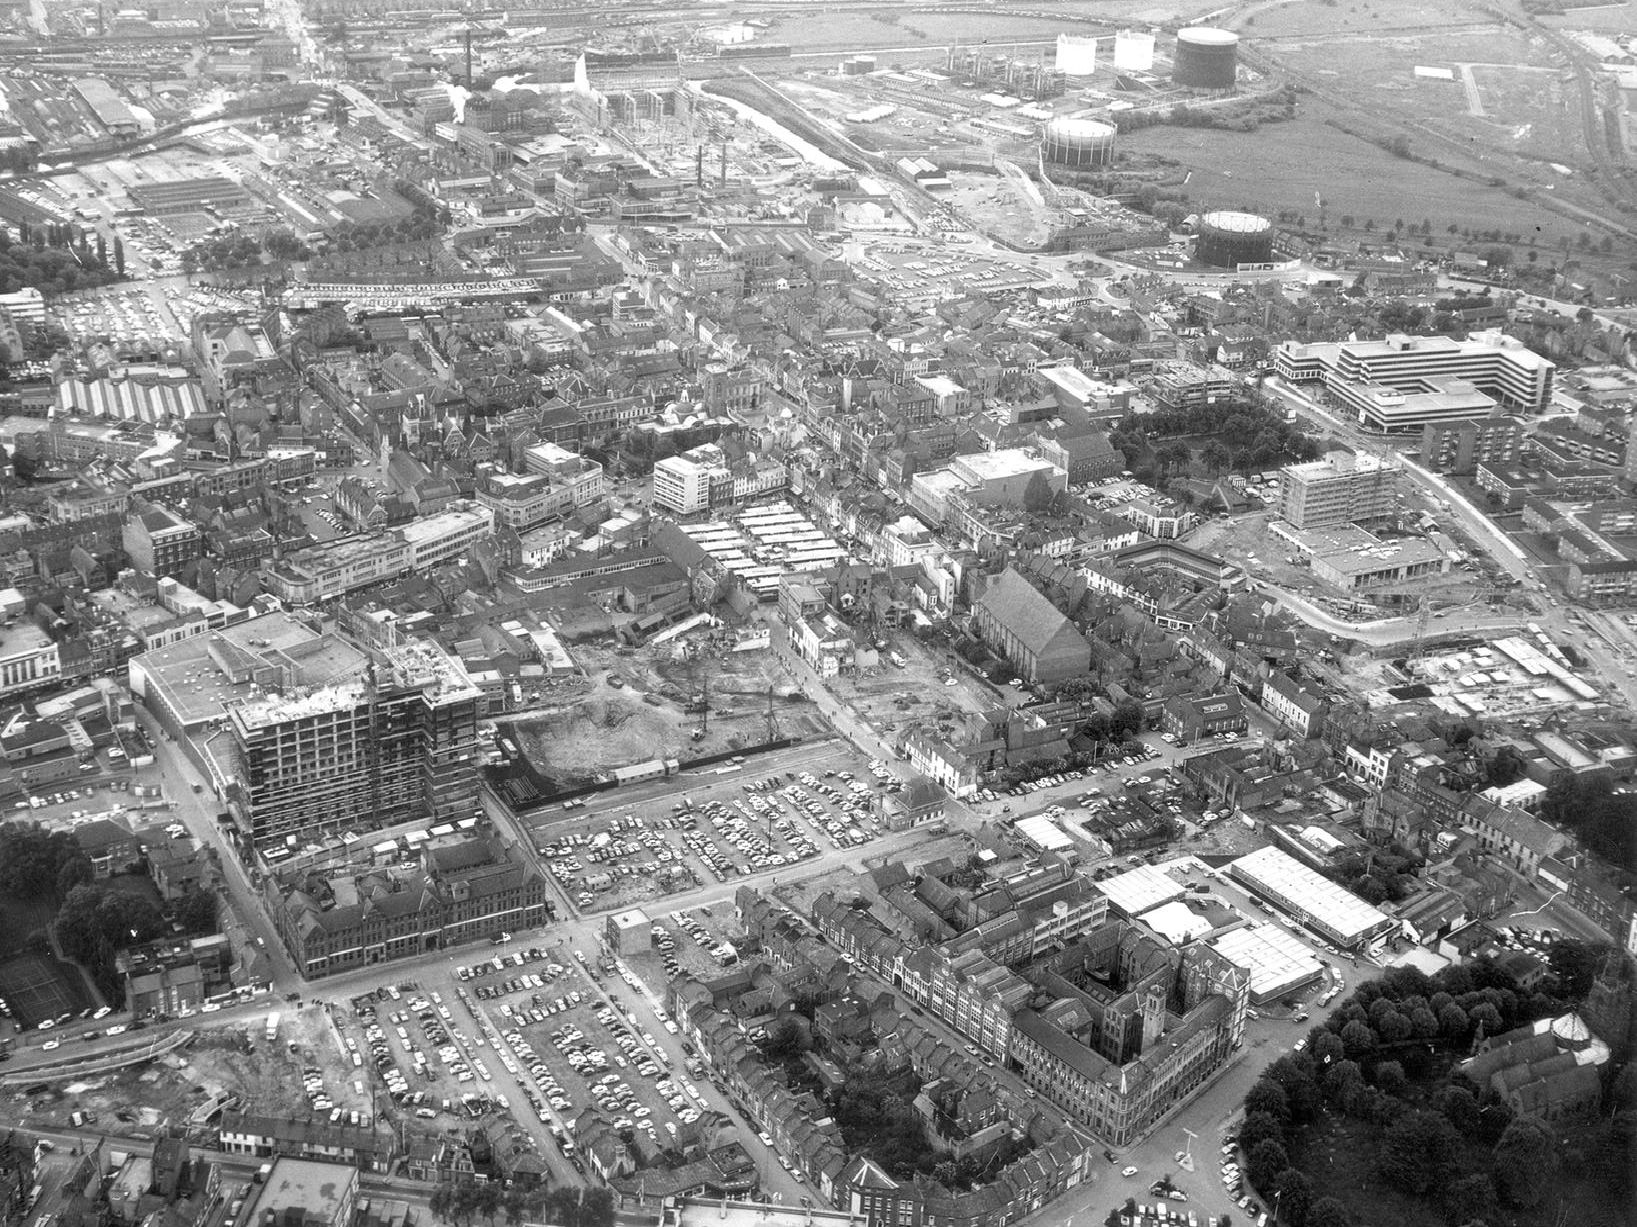 This aerial photograph of Northampton, taken in around 1972, reveals the extent of demolition that had taken place in the heart of the town leaving large swathes of car parking space: Ladys Lane runs from left to right (west to east). 'In the far right hand corner is The Church of the Holy Sepulchre, surrounded by trees: top middle is the modern Carlsberg Brewery.